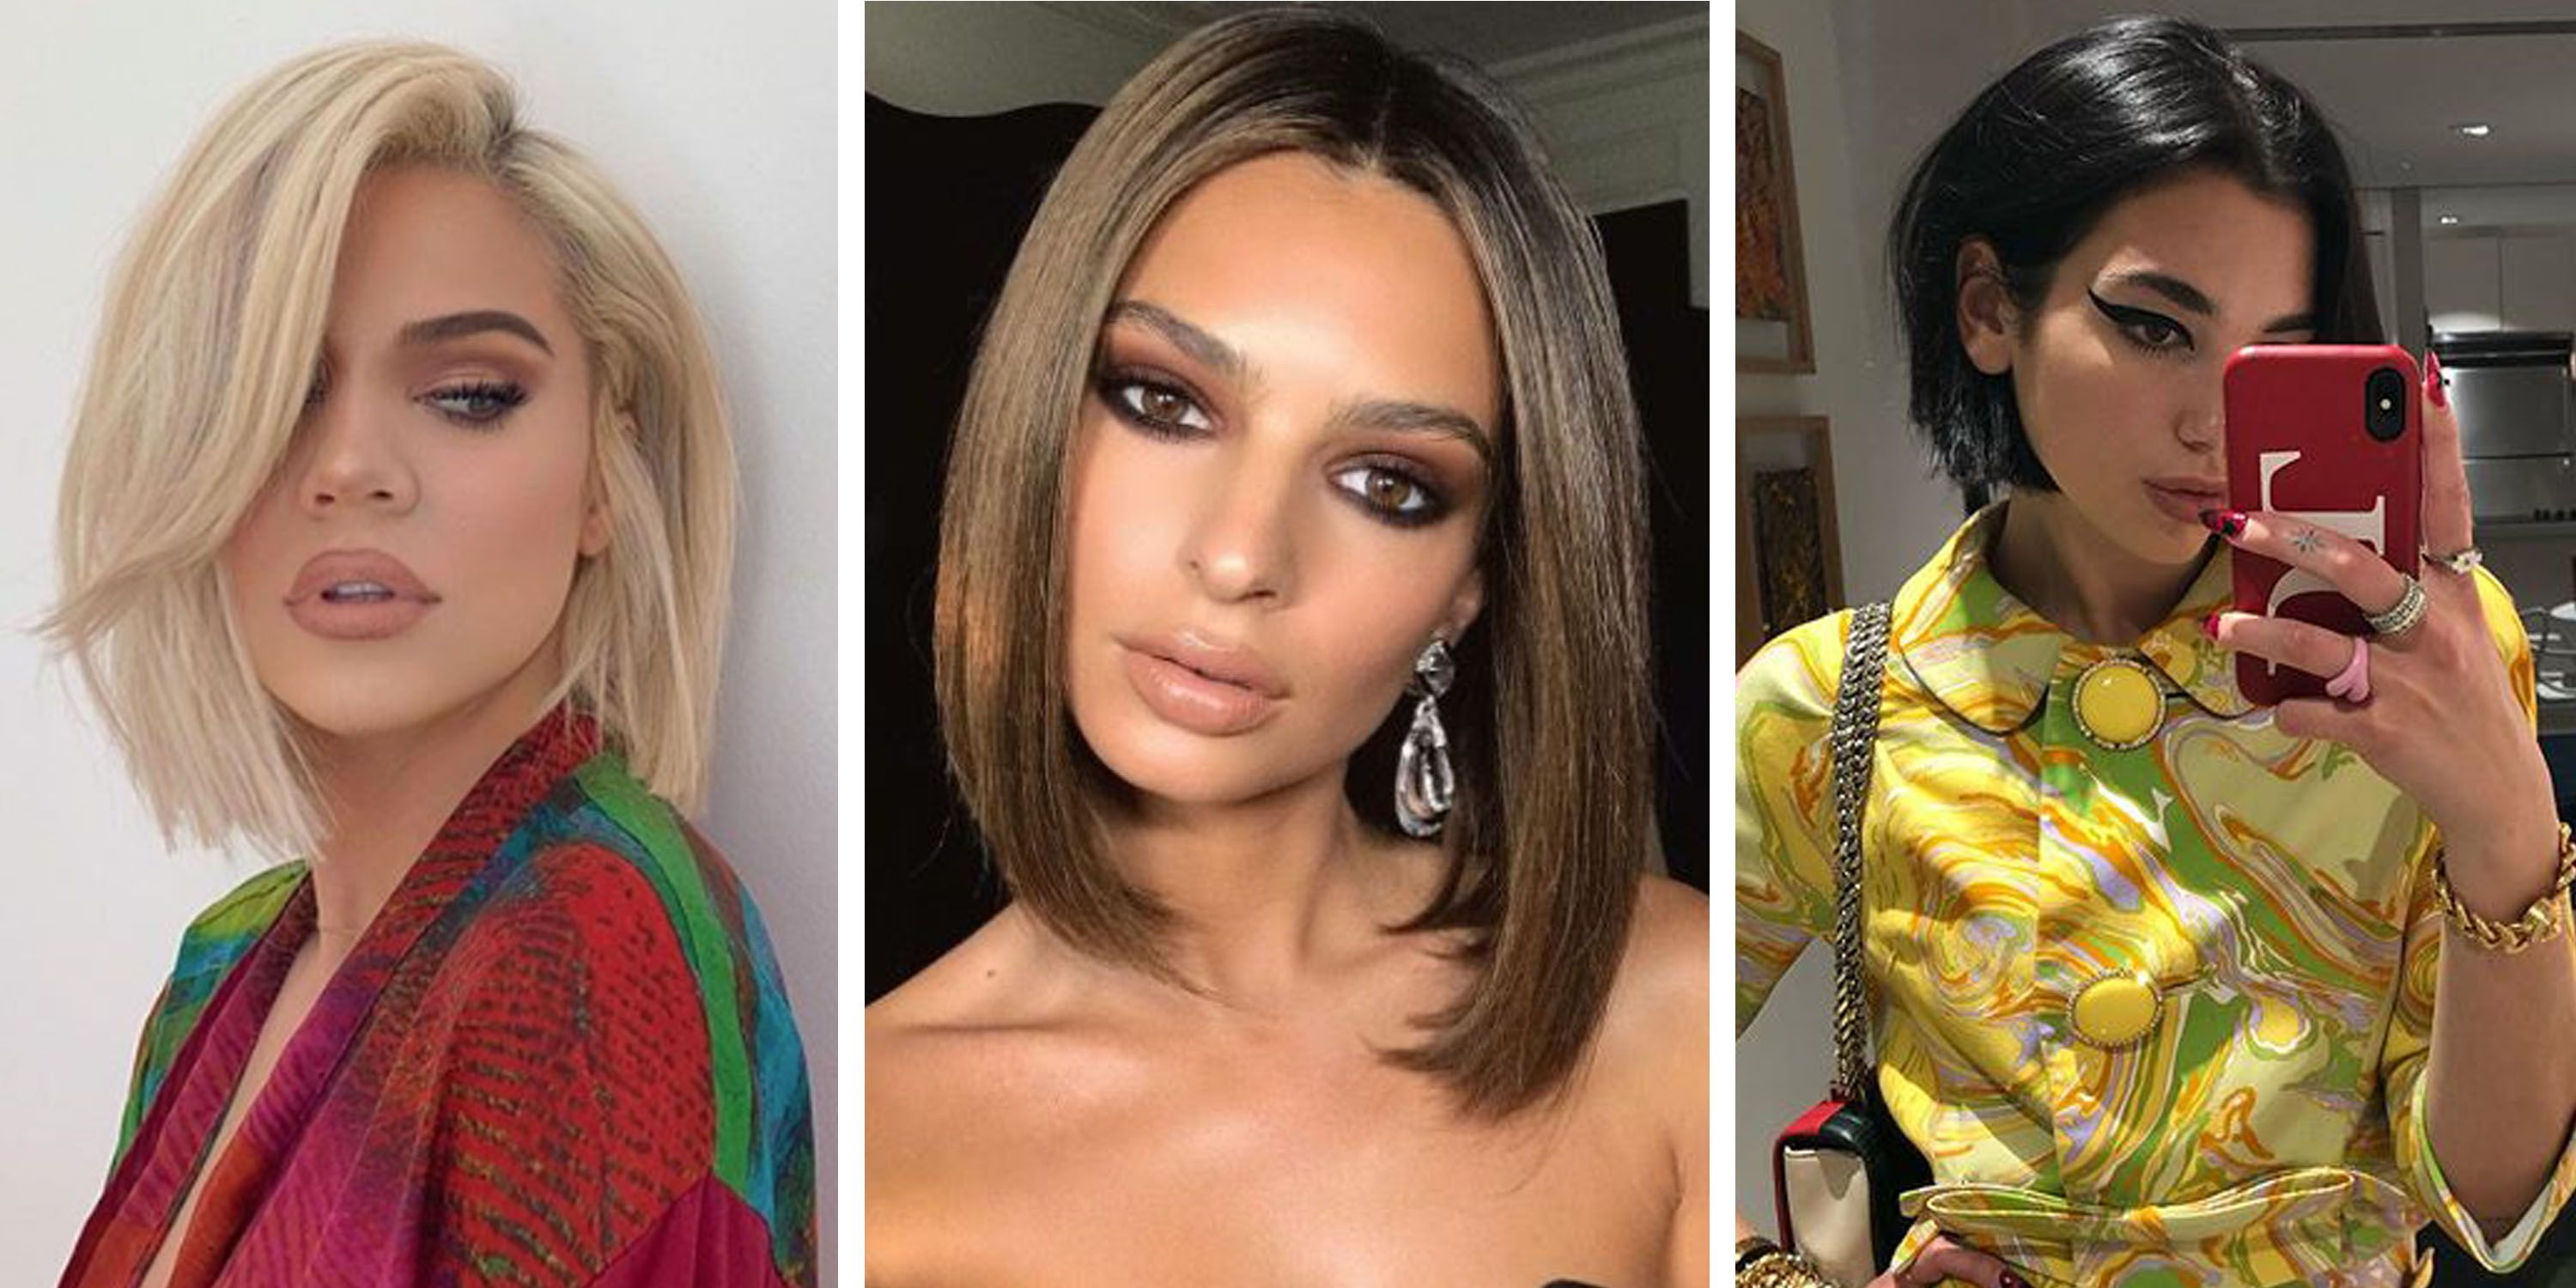 Bob hairstyles for 2020 , 66 short haircut trends to try now